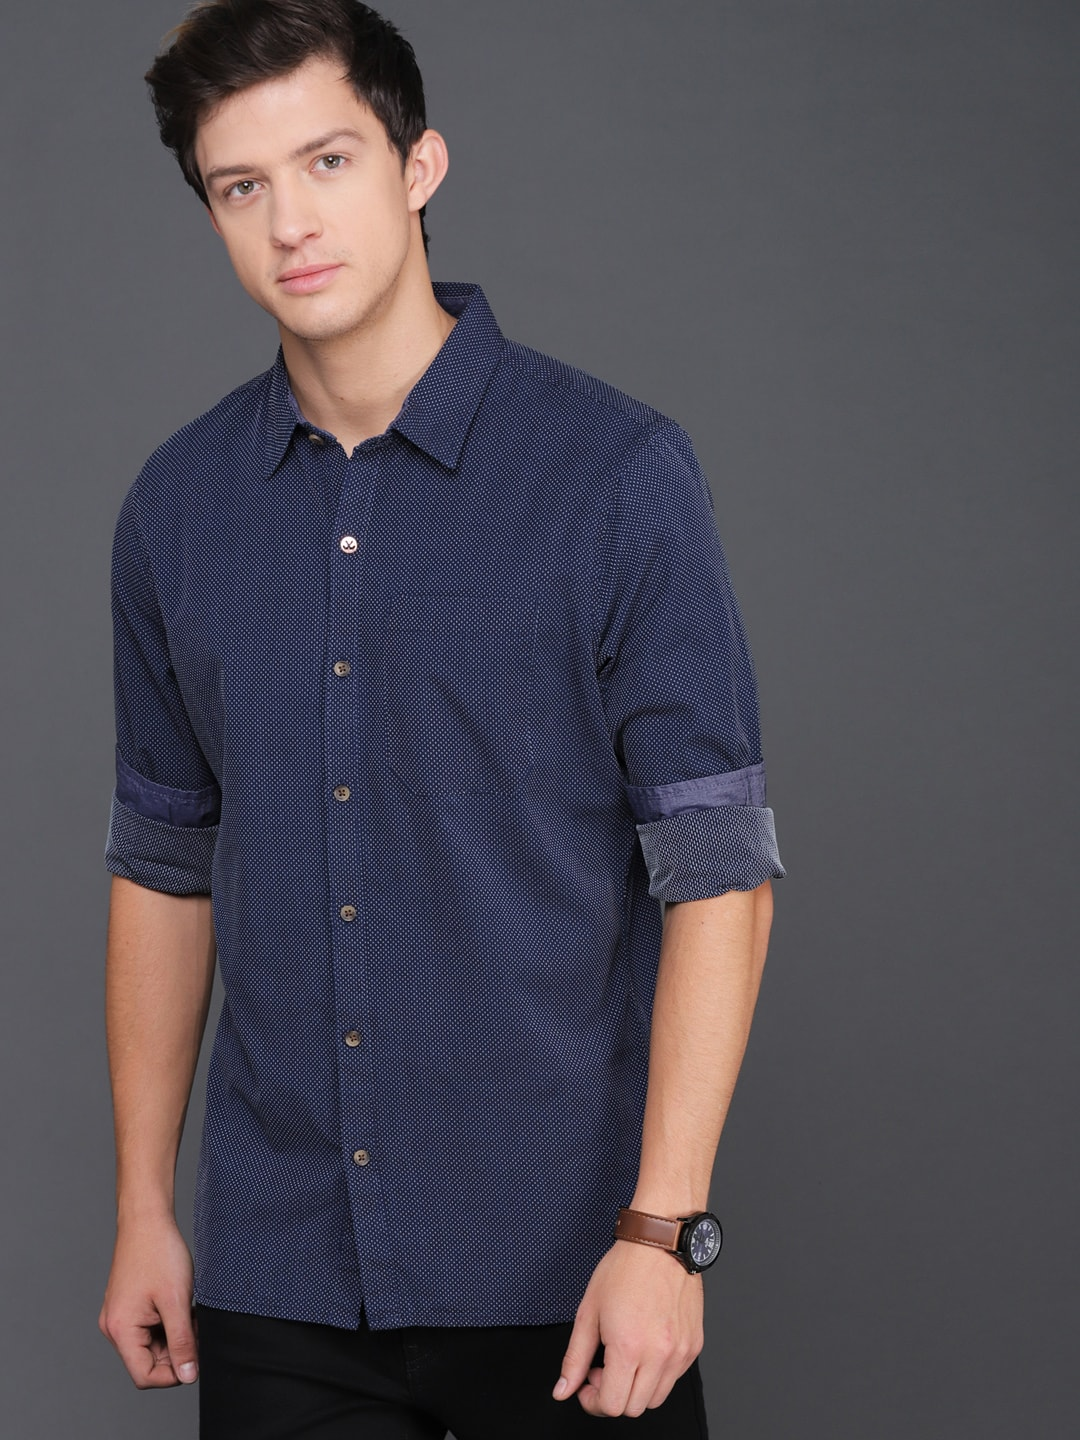 895710efe8a Casual Shirts for Men - Buy Men Casual Shirt Online in India